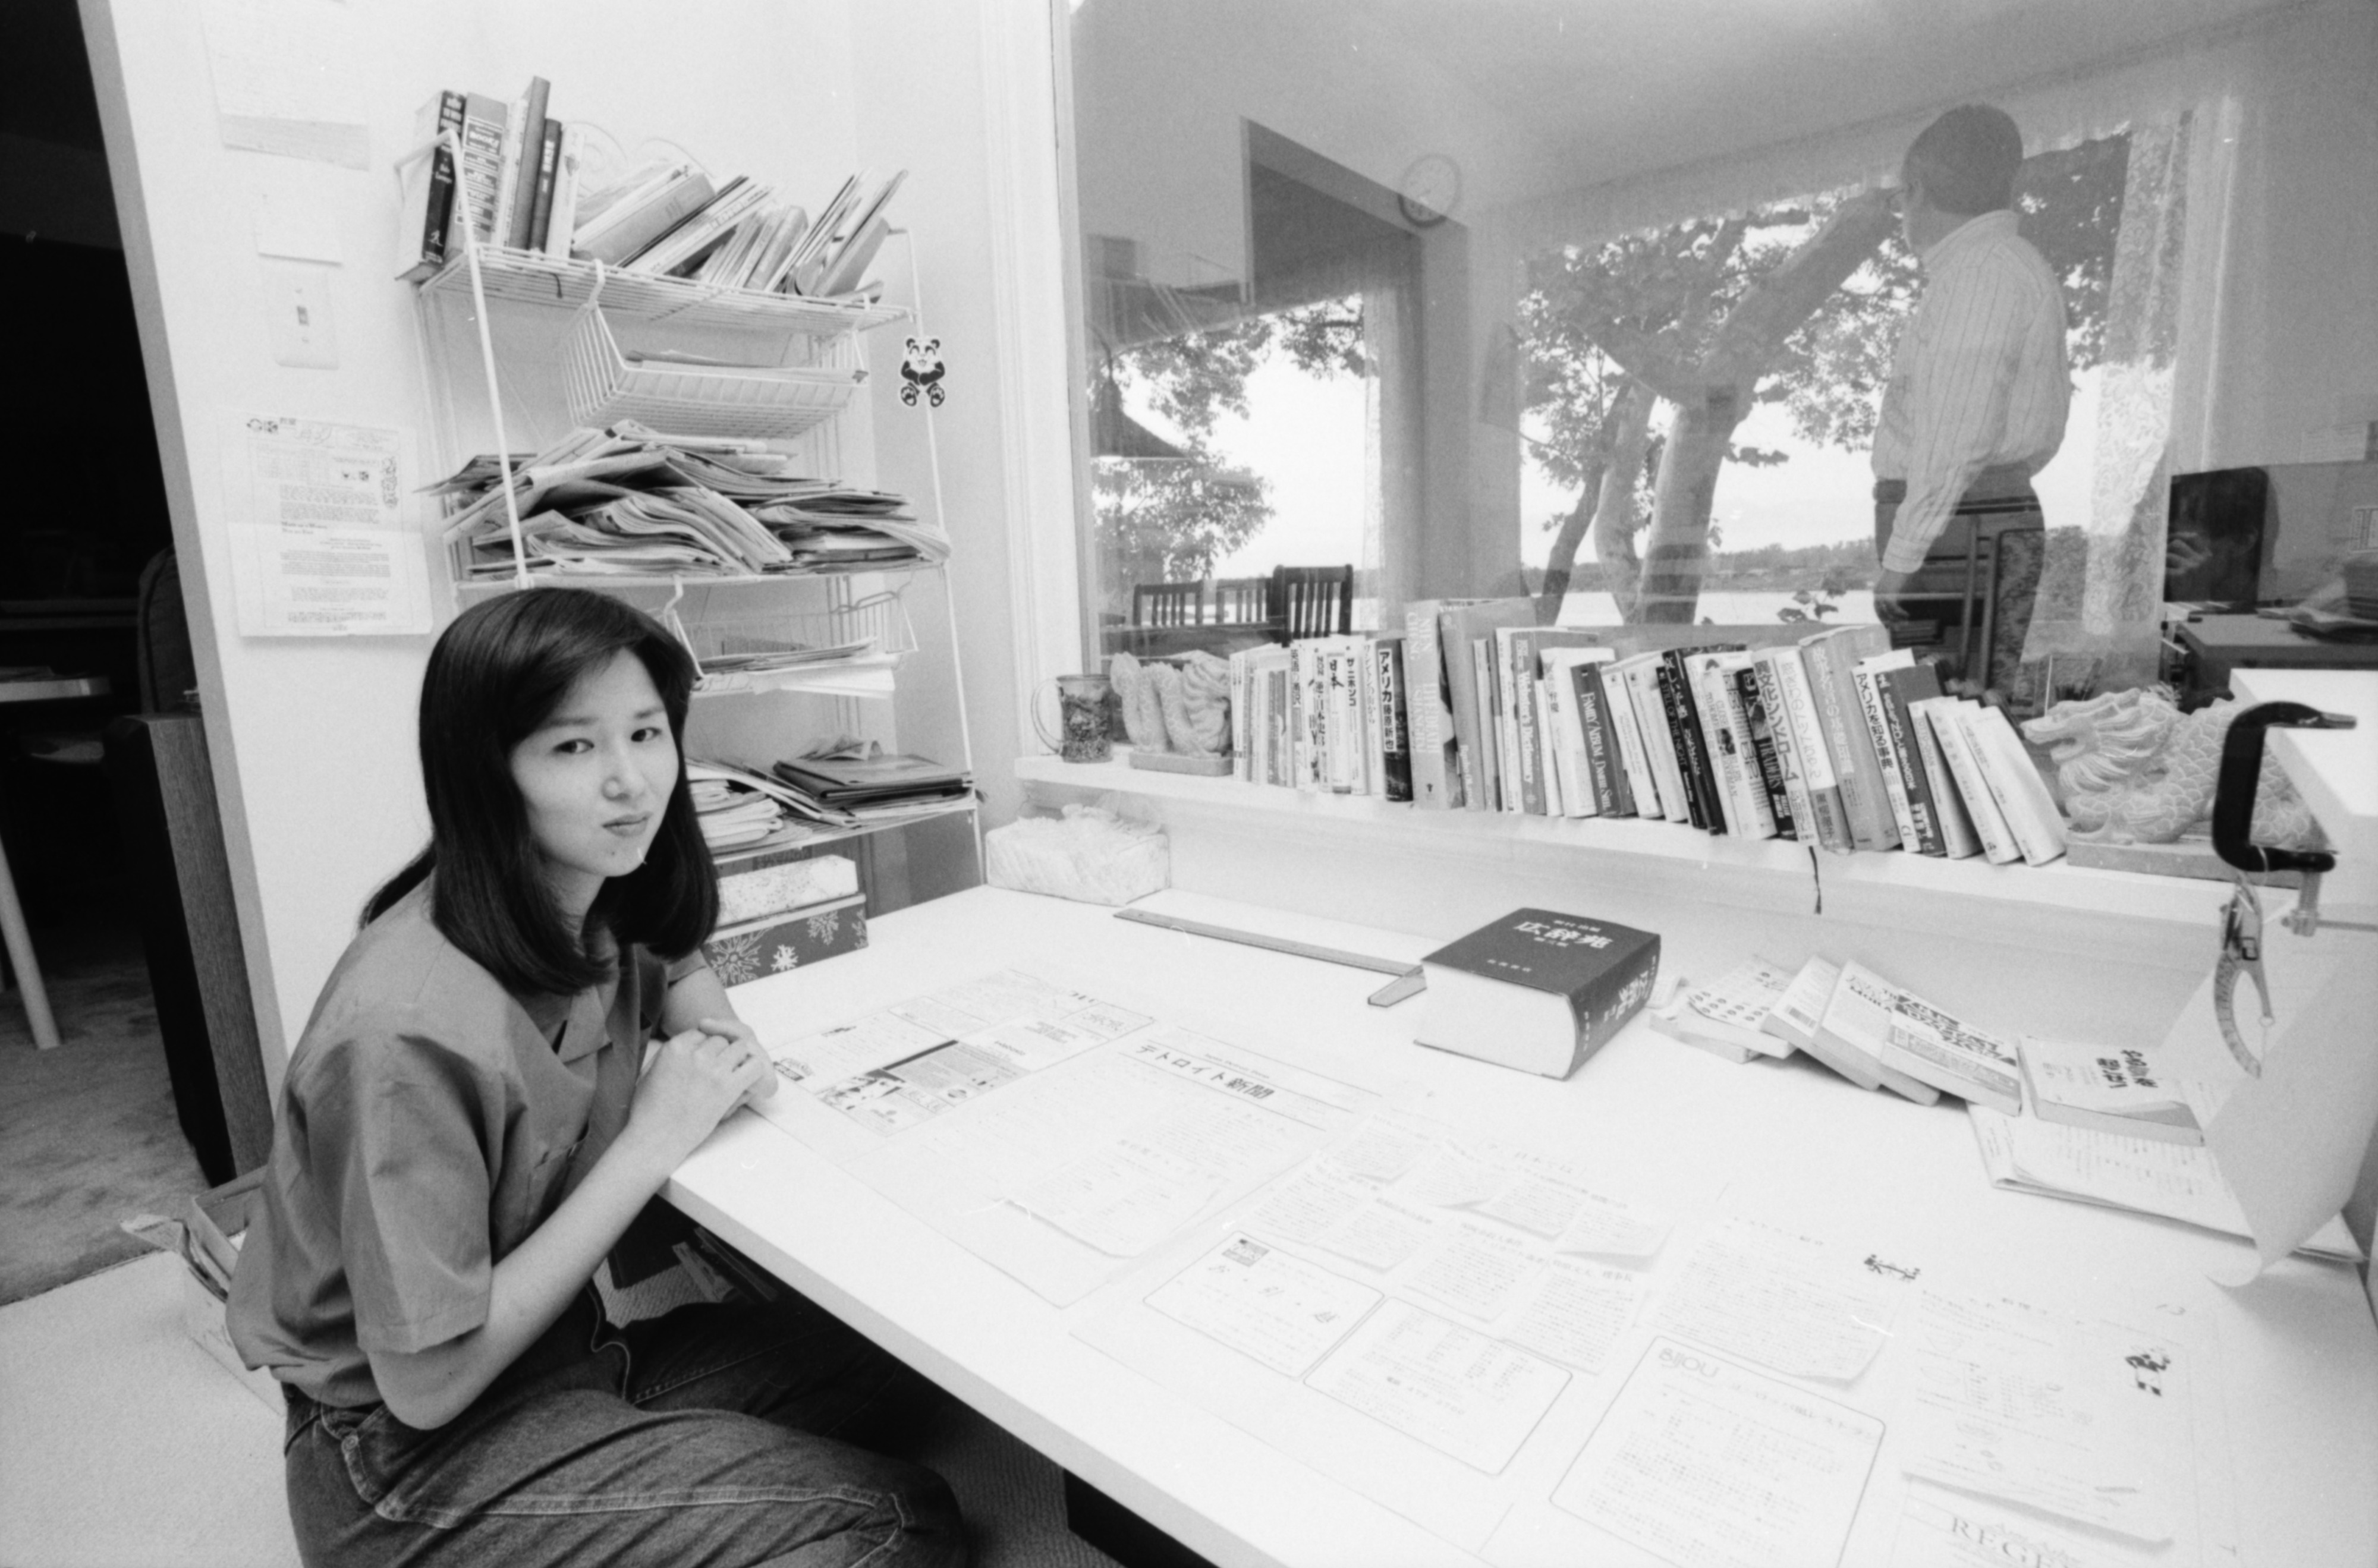 Miyuki O. Mascot, editor and publisher of the the Japan Detroit Press, July 1991 image